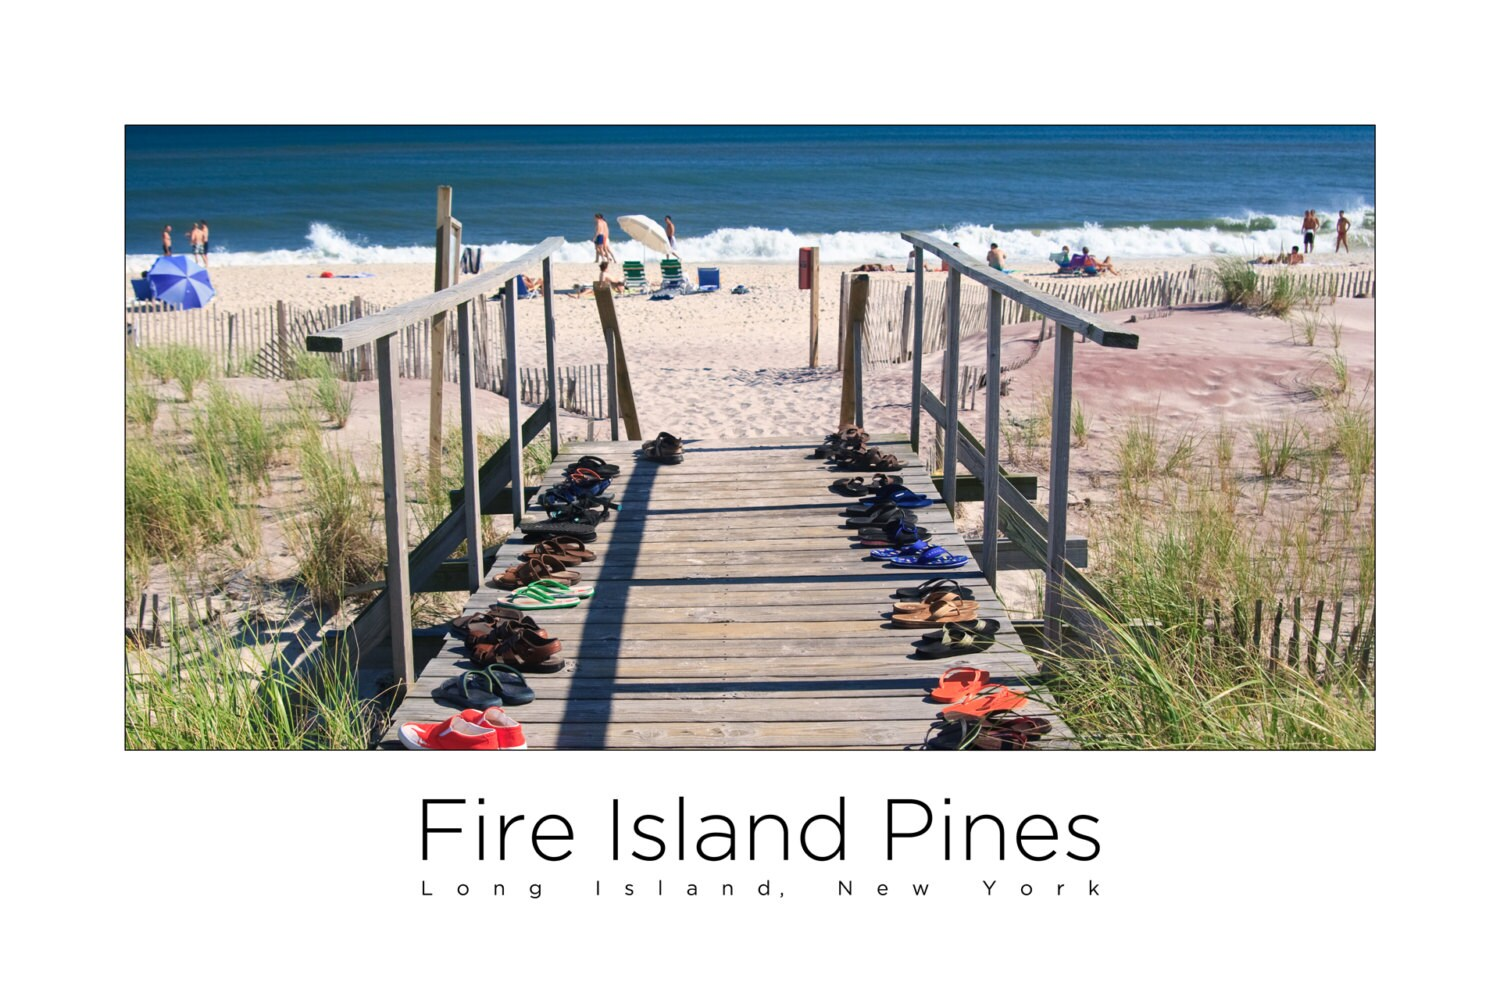 Fire Island Pines Poster - Beach Walk